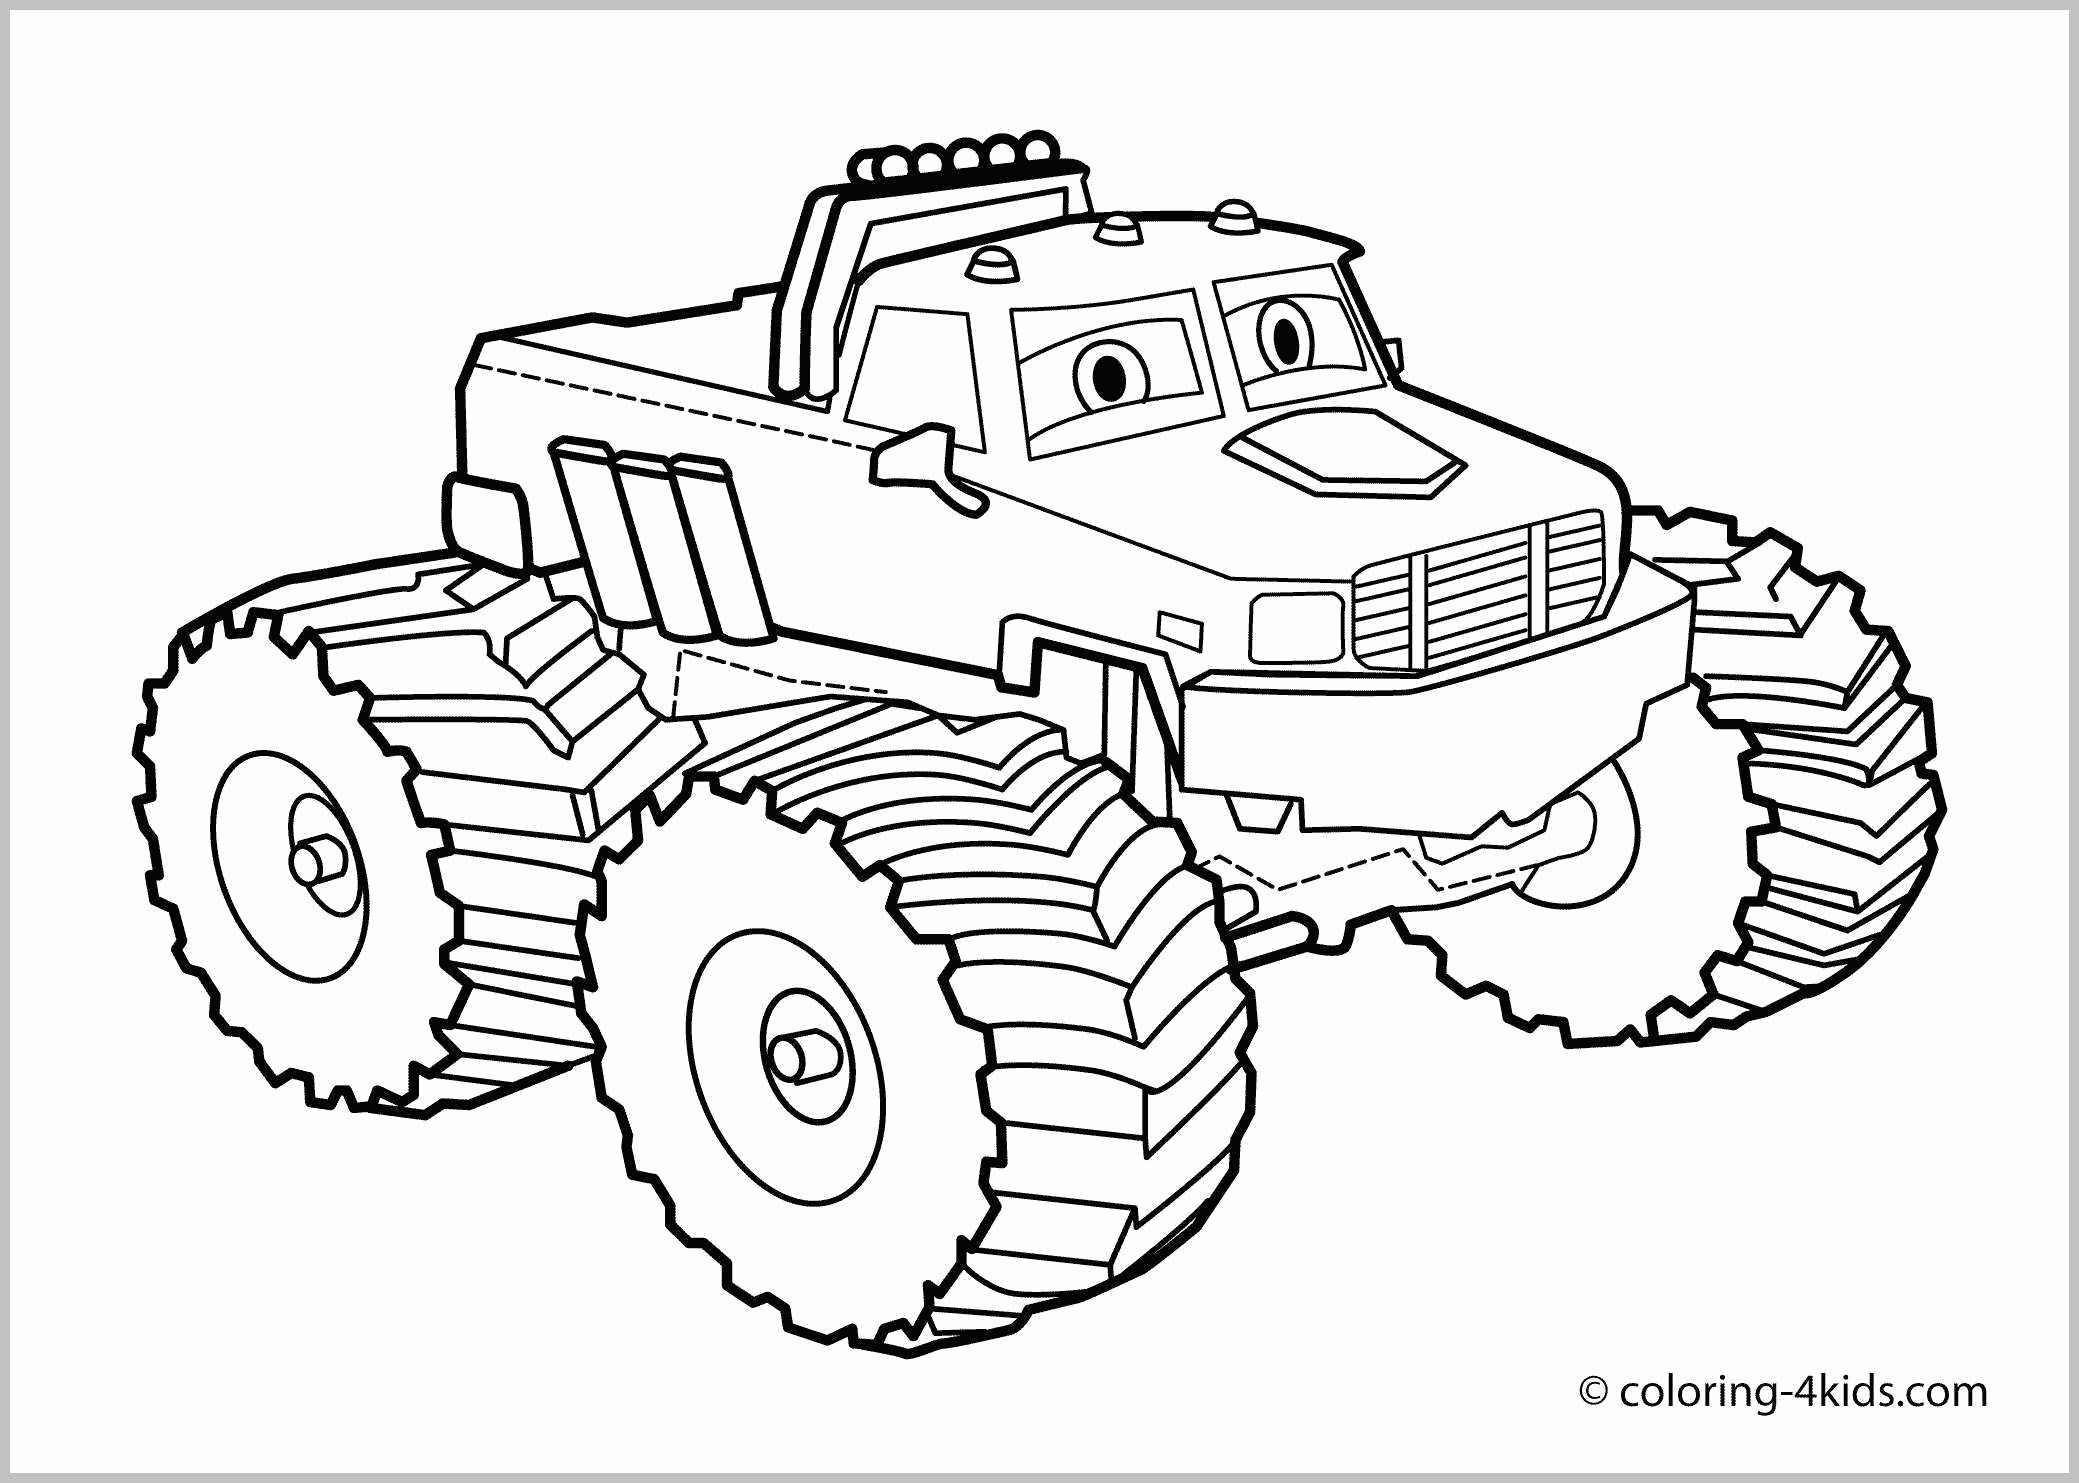 Coloring Pages Monster Trucks Beautiful 15 Unique Monster Truck To Print Unsplash Monster Truck Coloring Pages Monster Coloring Pages Truck Coloring Pages